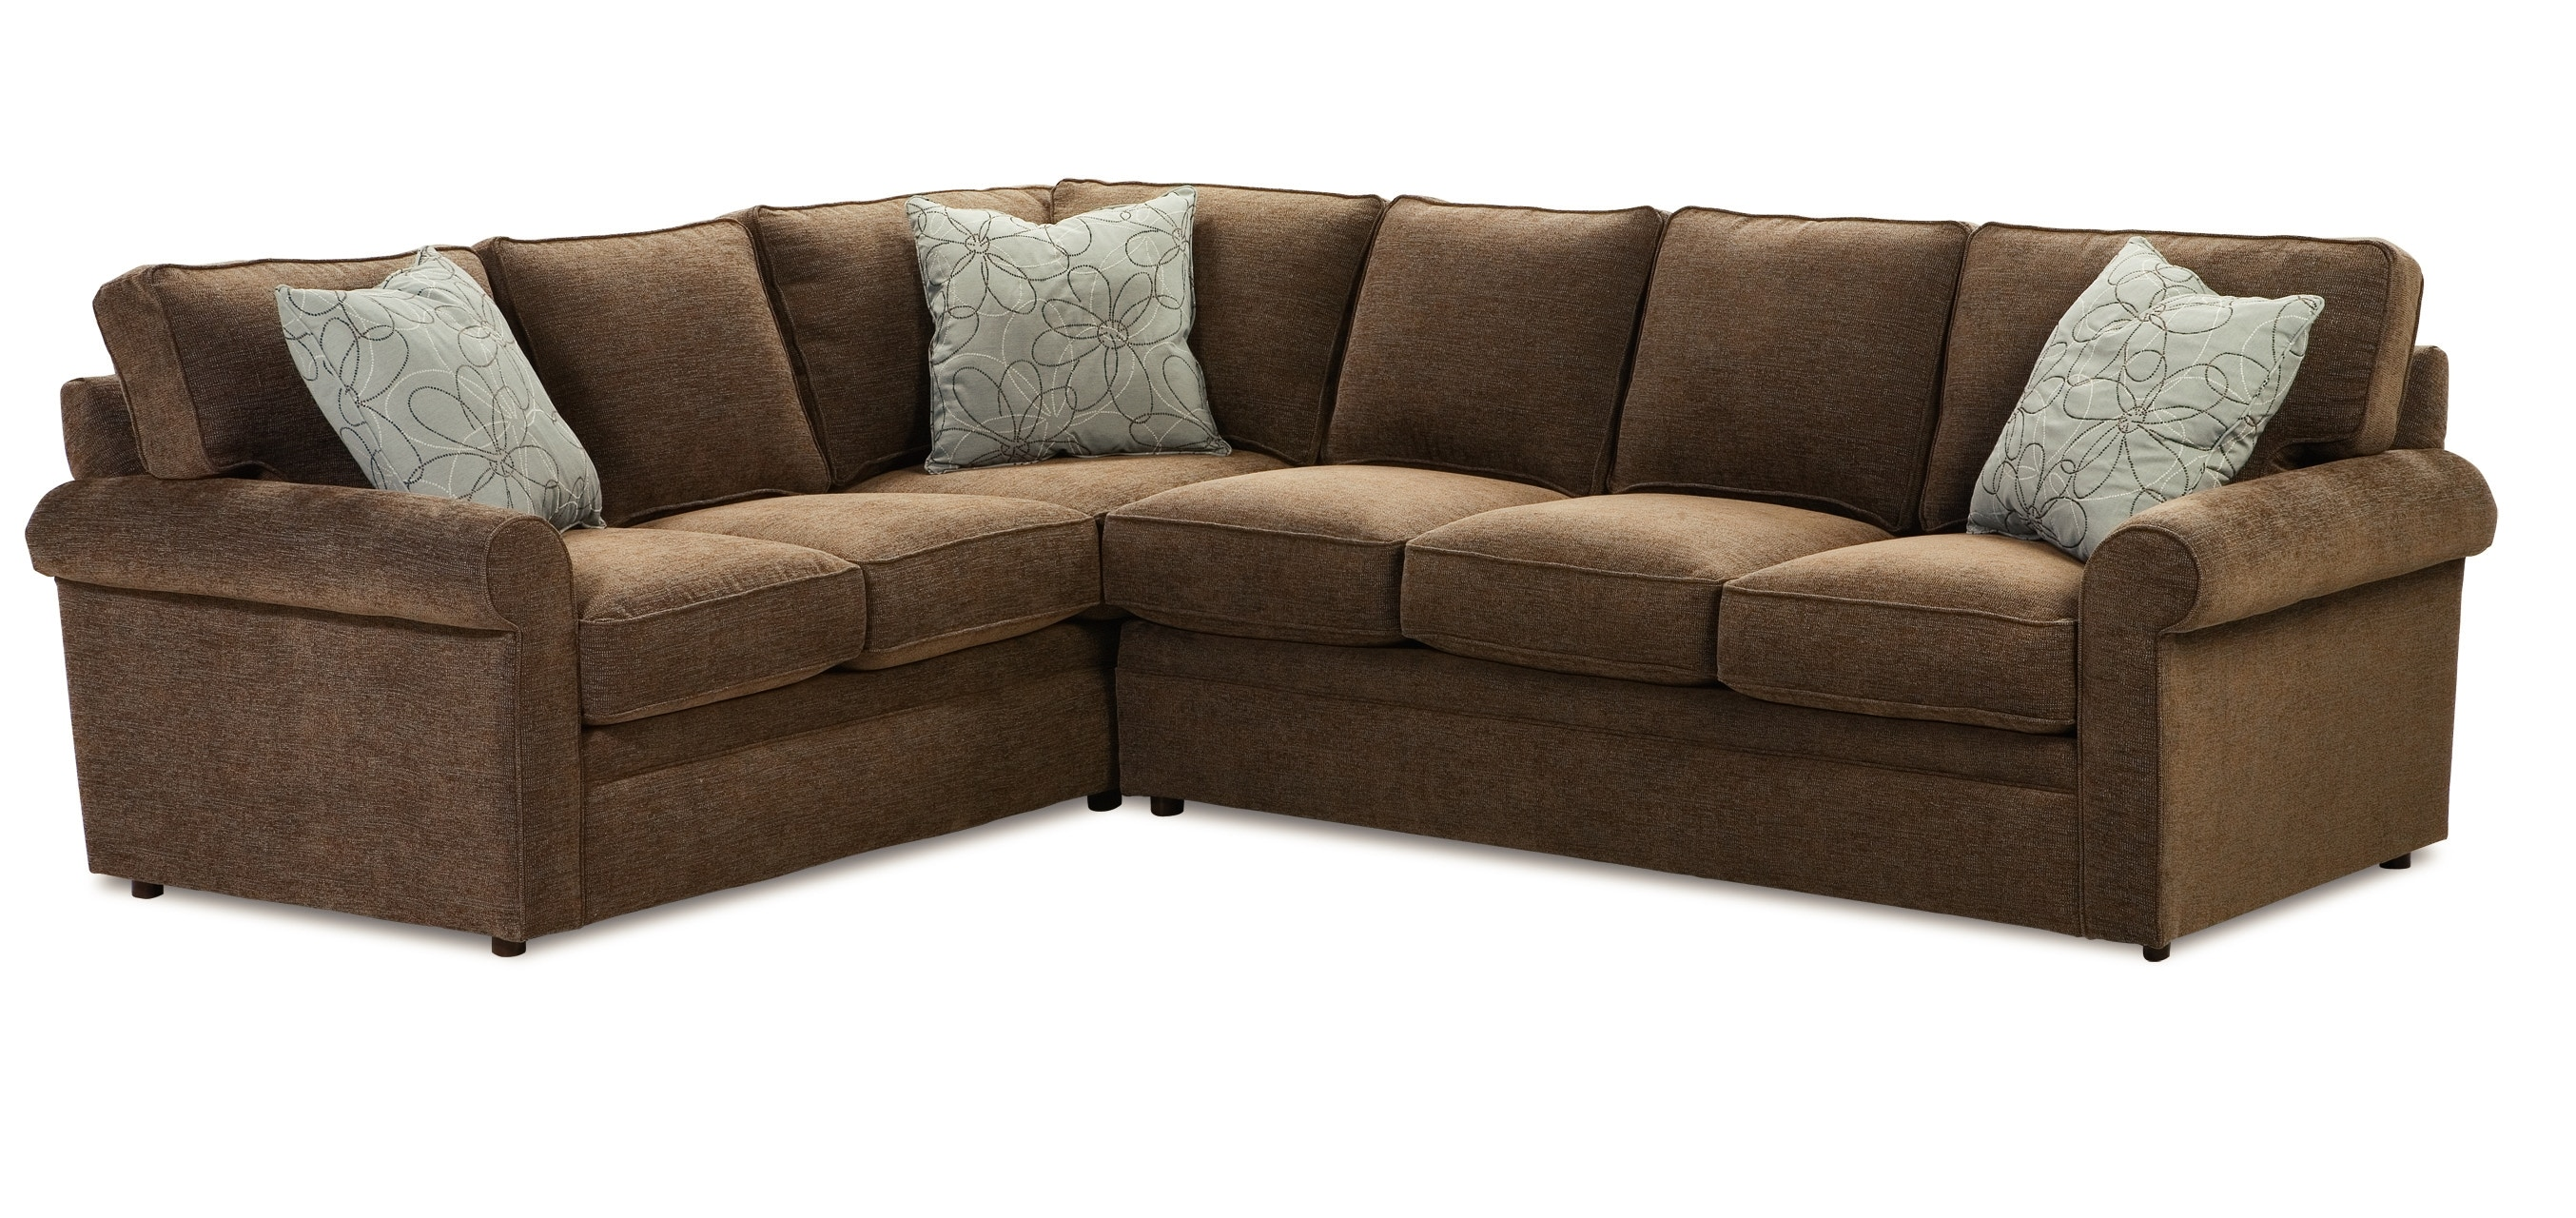 Ordinaire Rowe Brentwood Sectional 9252 Sect